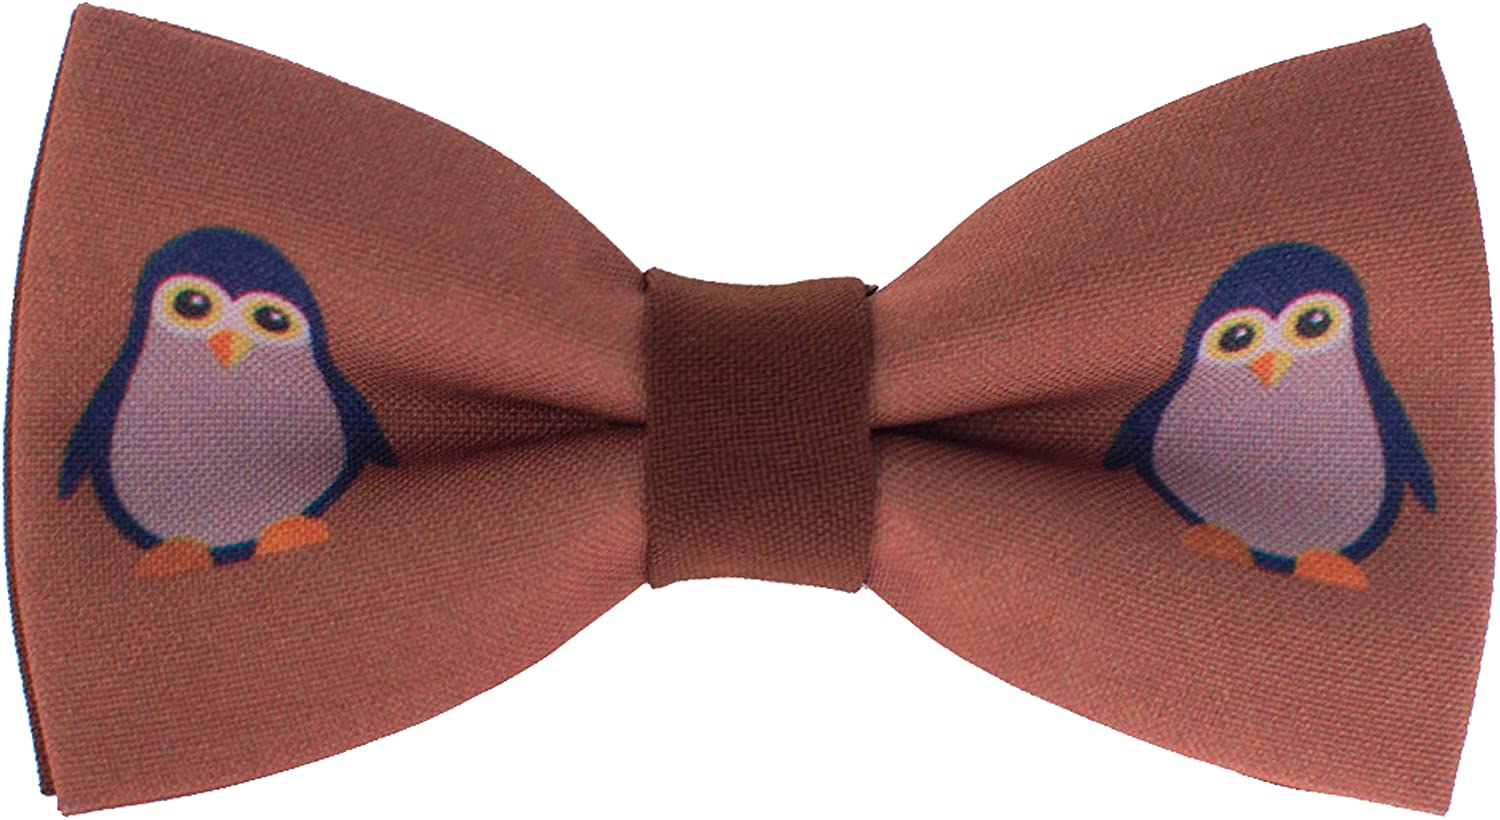 Brown Penguin bow tie unisex pattern pre-tied shape in many colors, by Bow Tie House